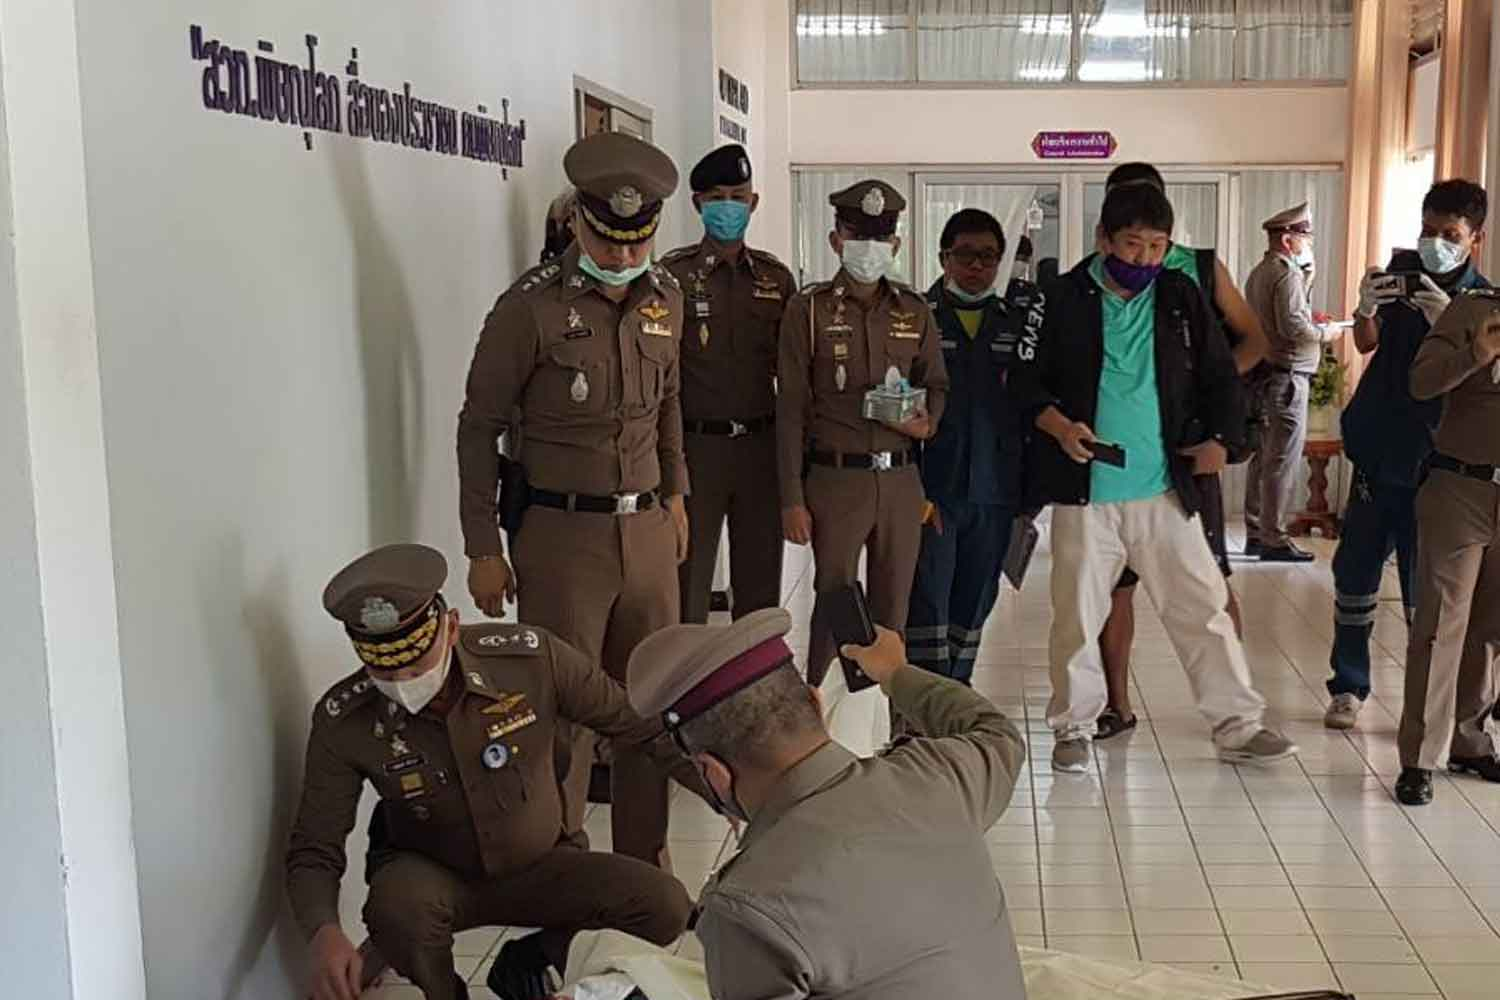 Police cover the body of one of the victims of a the shooting spree at the Radio Thailand station in Phitsanulok. Three people, including the station director, were killed, and a fourth wounded. (Photo by Chinnawat Singha)